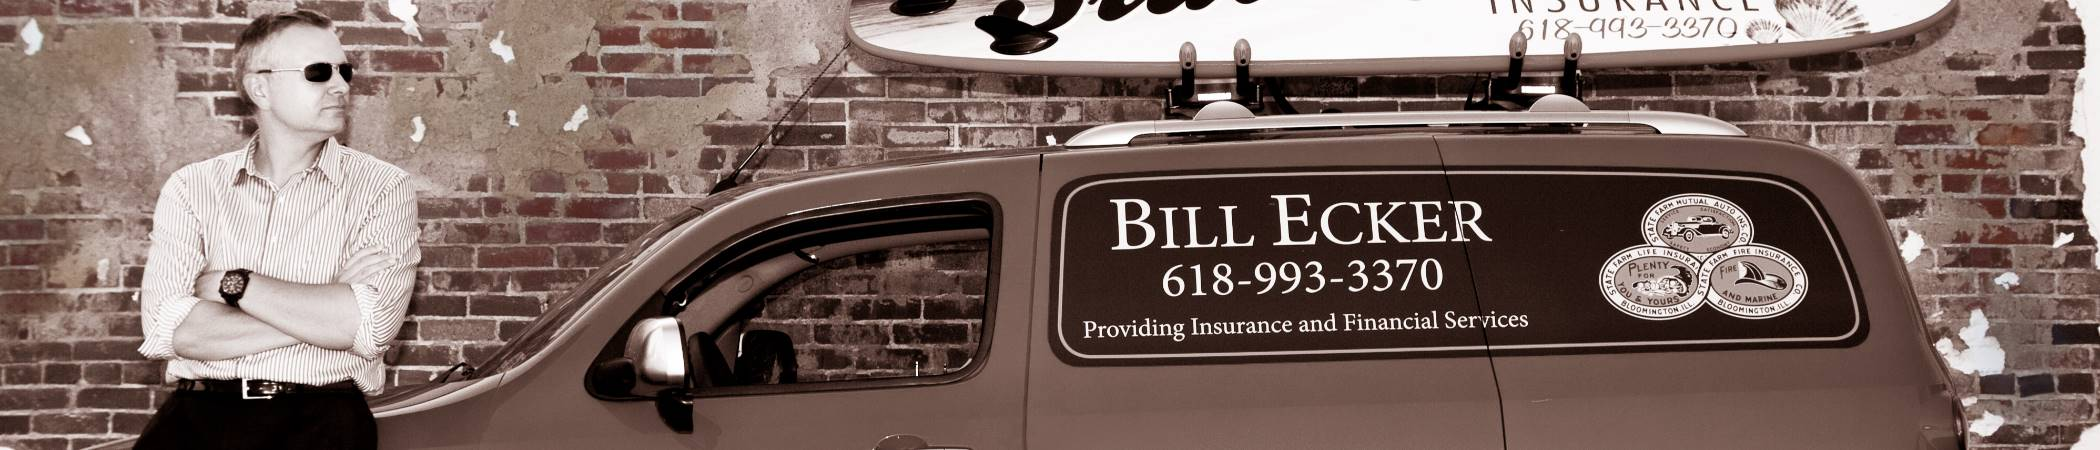 Bill Ecker - State Farm - Providing Auto, Home, Life & Business Insurance and more